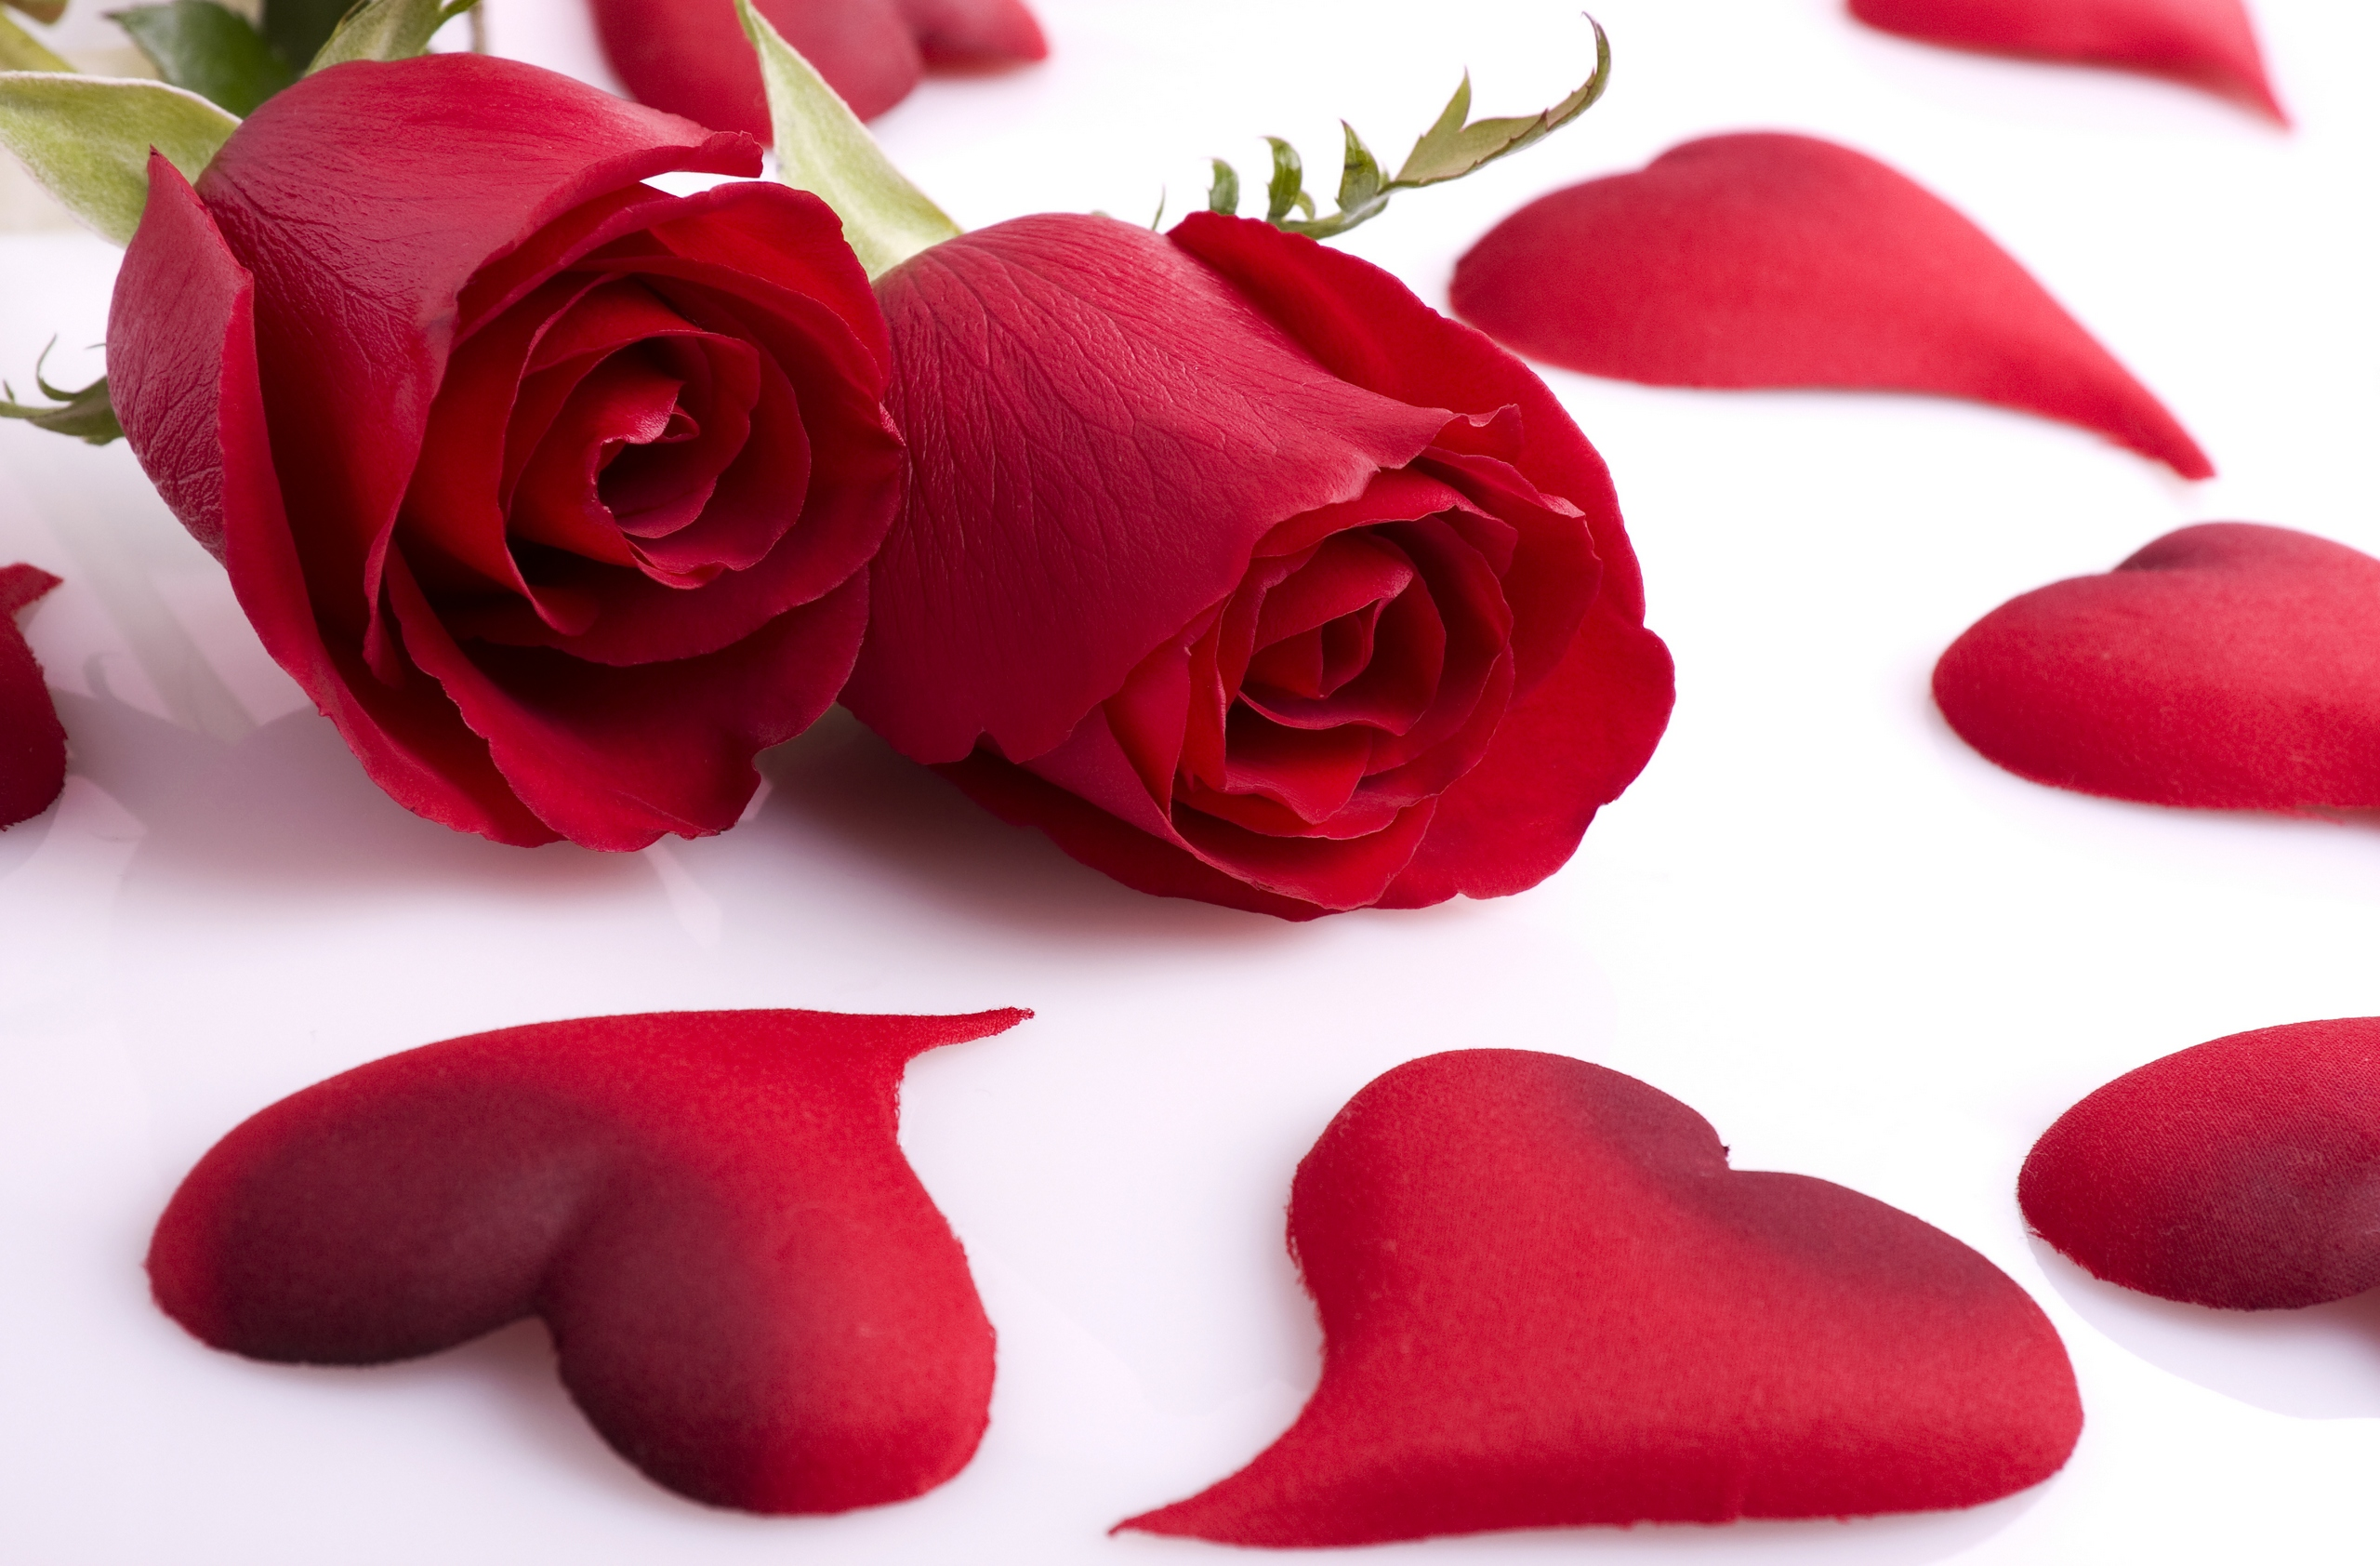 Red-Rose-Love-Heart-Shaped-Petal-HD-Wallpaper